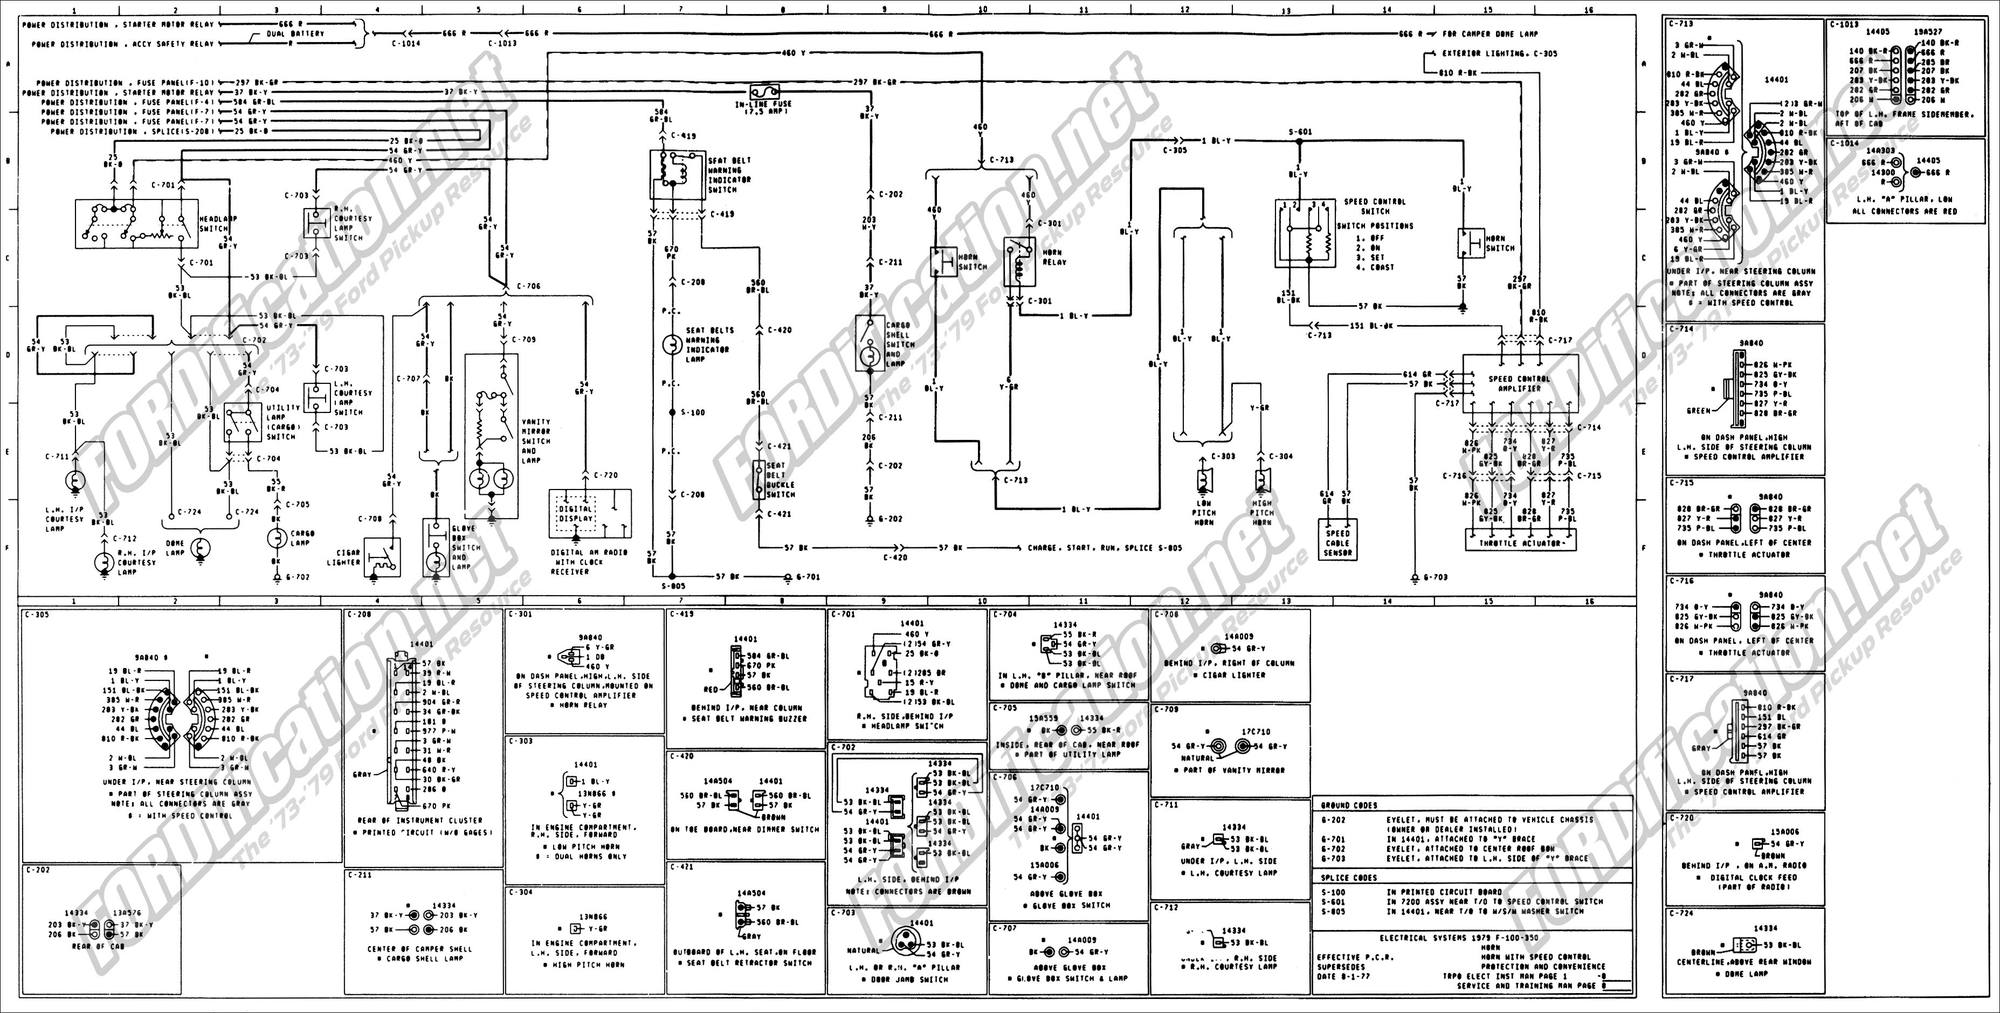 02 ford f550 headlight wiring diagrams  | 874 x 565